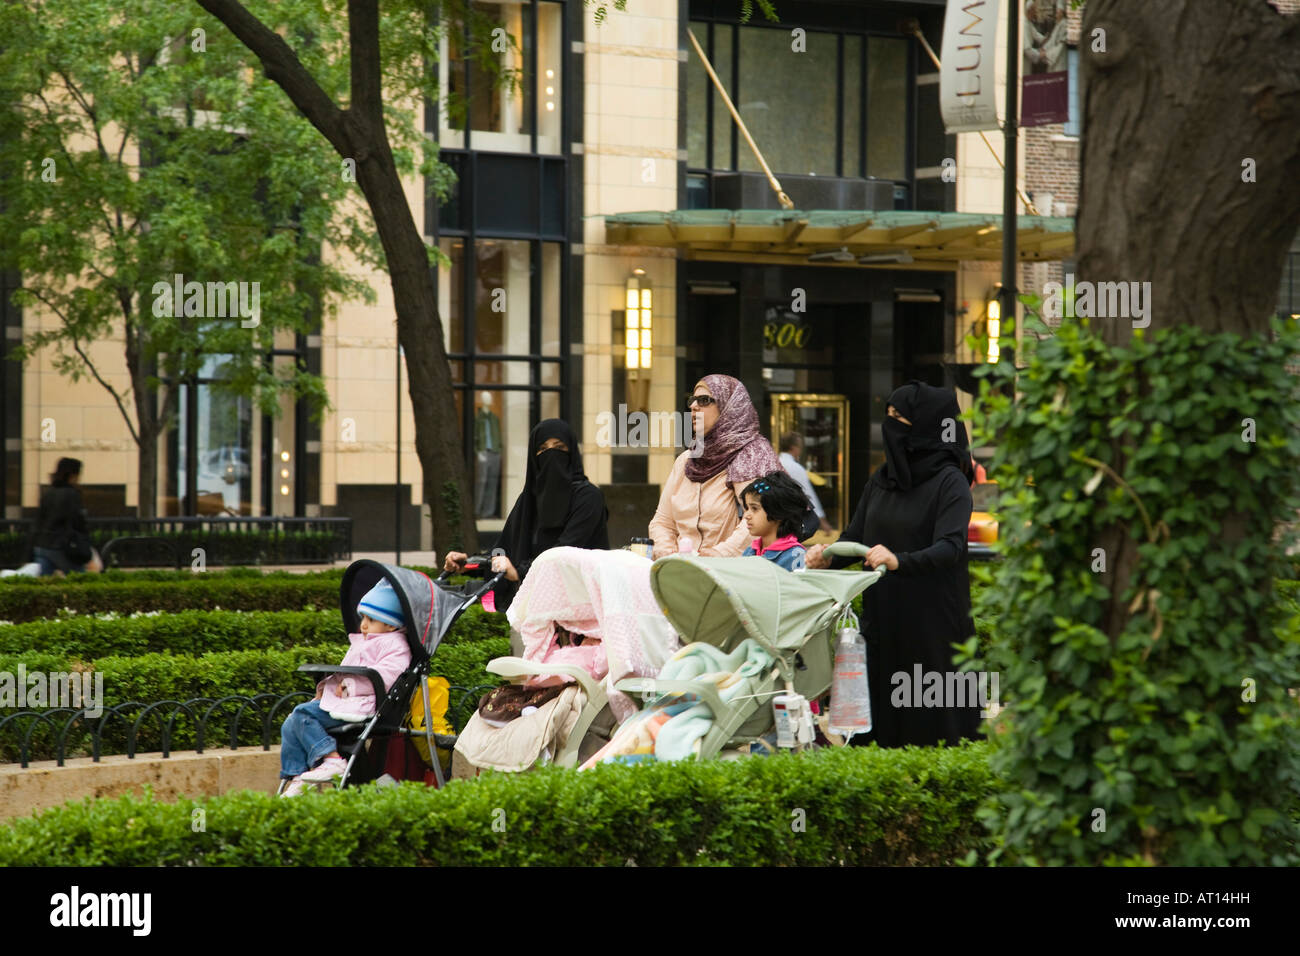 ILLINOIS Chicago Three observant Muslim women pushing strollers in Water Tower Park wearing burqas and head scarf - Stock Image